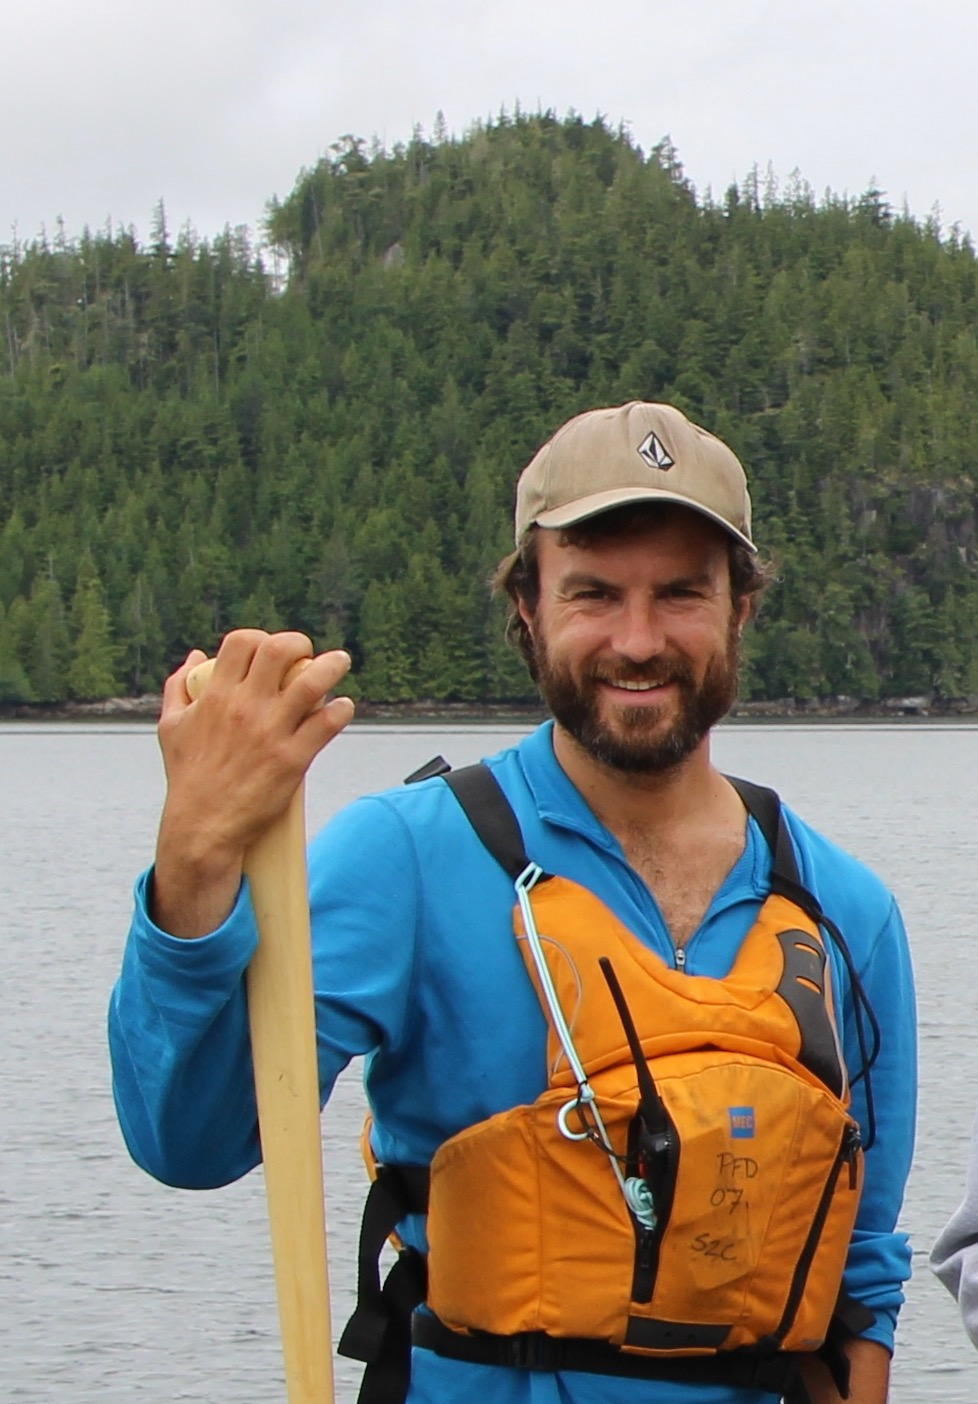 Shawn Kangro, Paddle Program Instructor